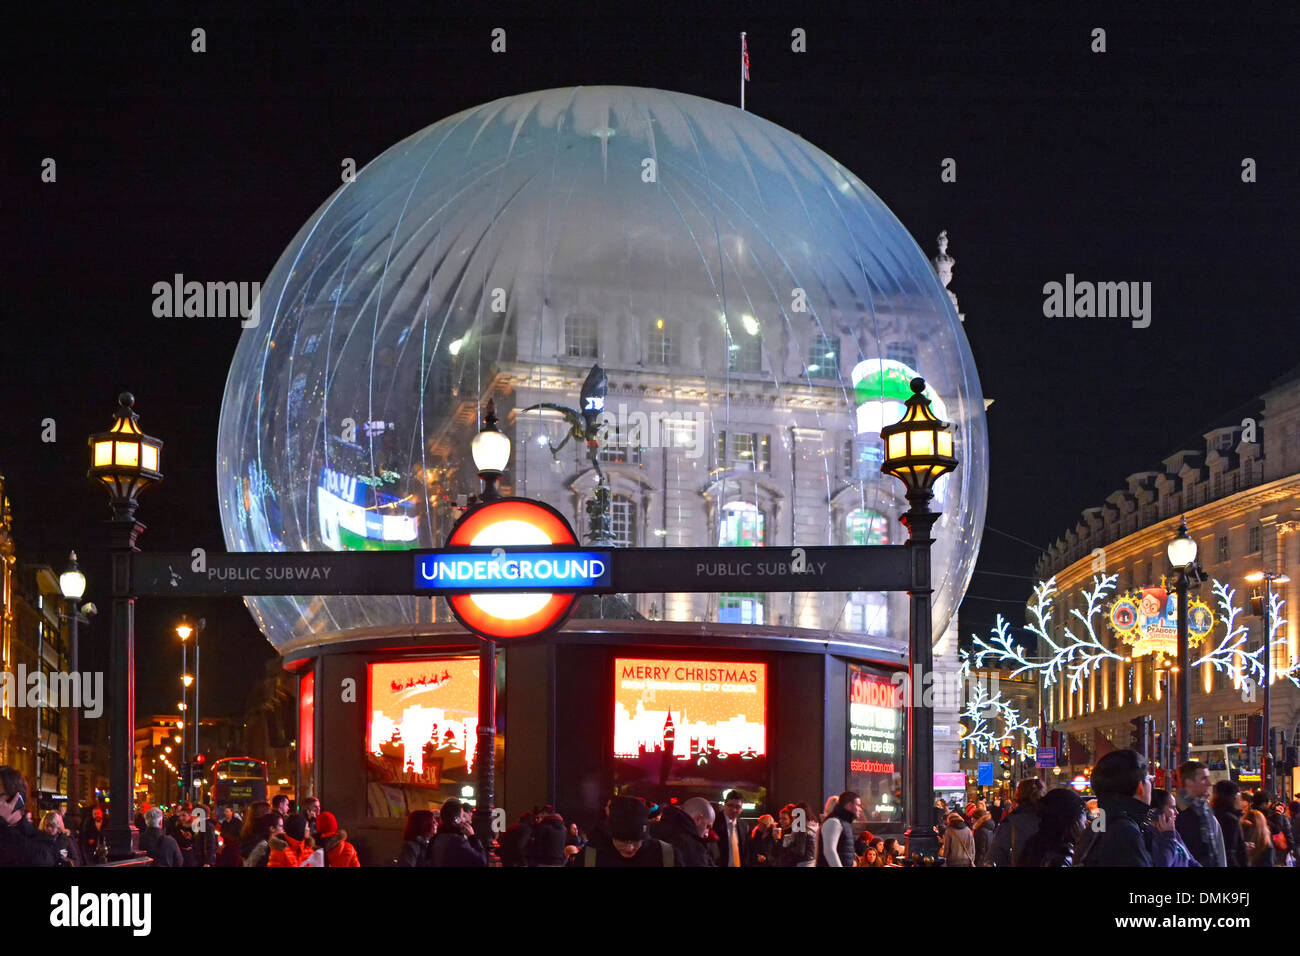 Piccadilly Circus with Eros statue inside a large snow globe ...